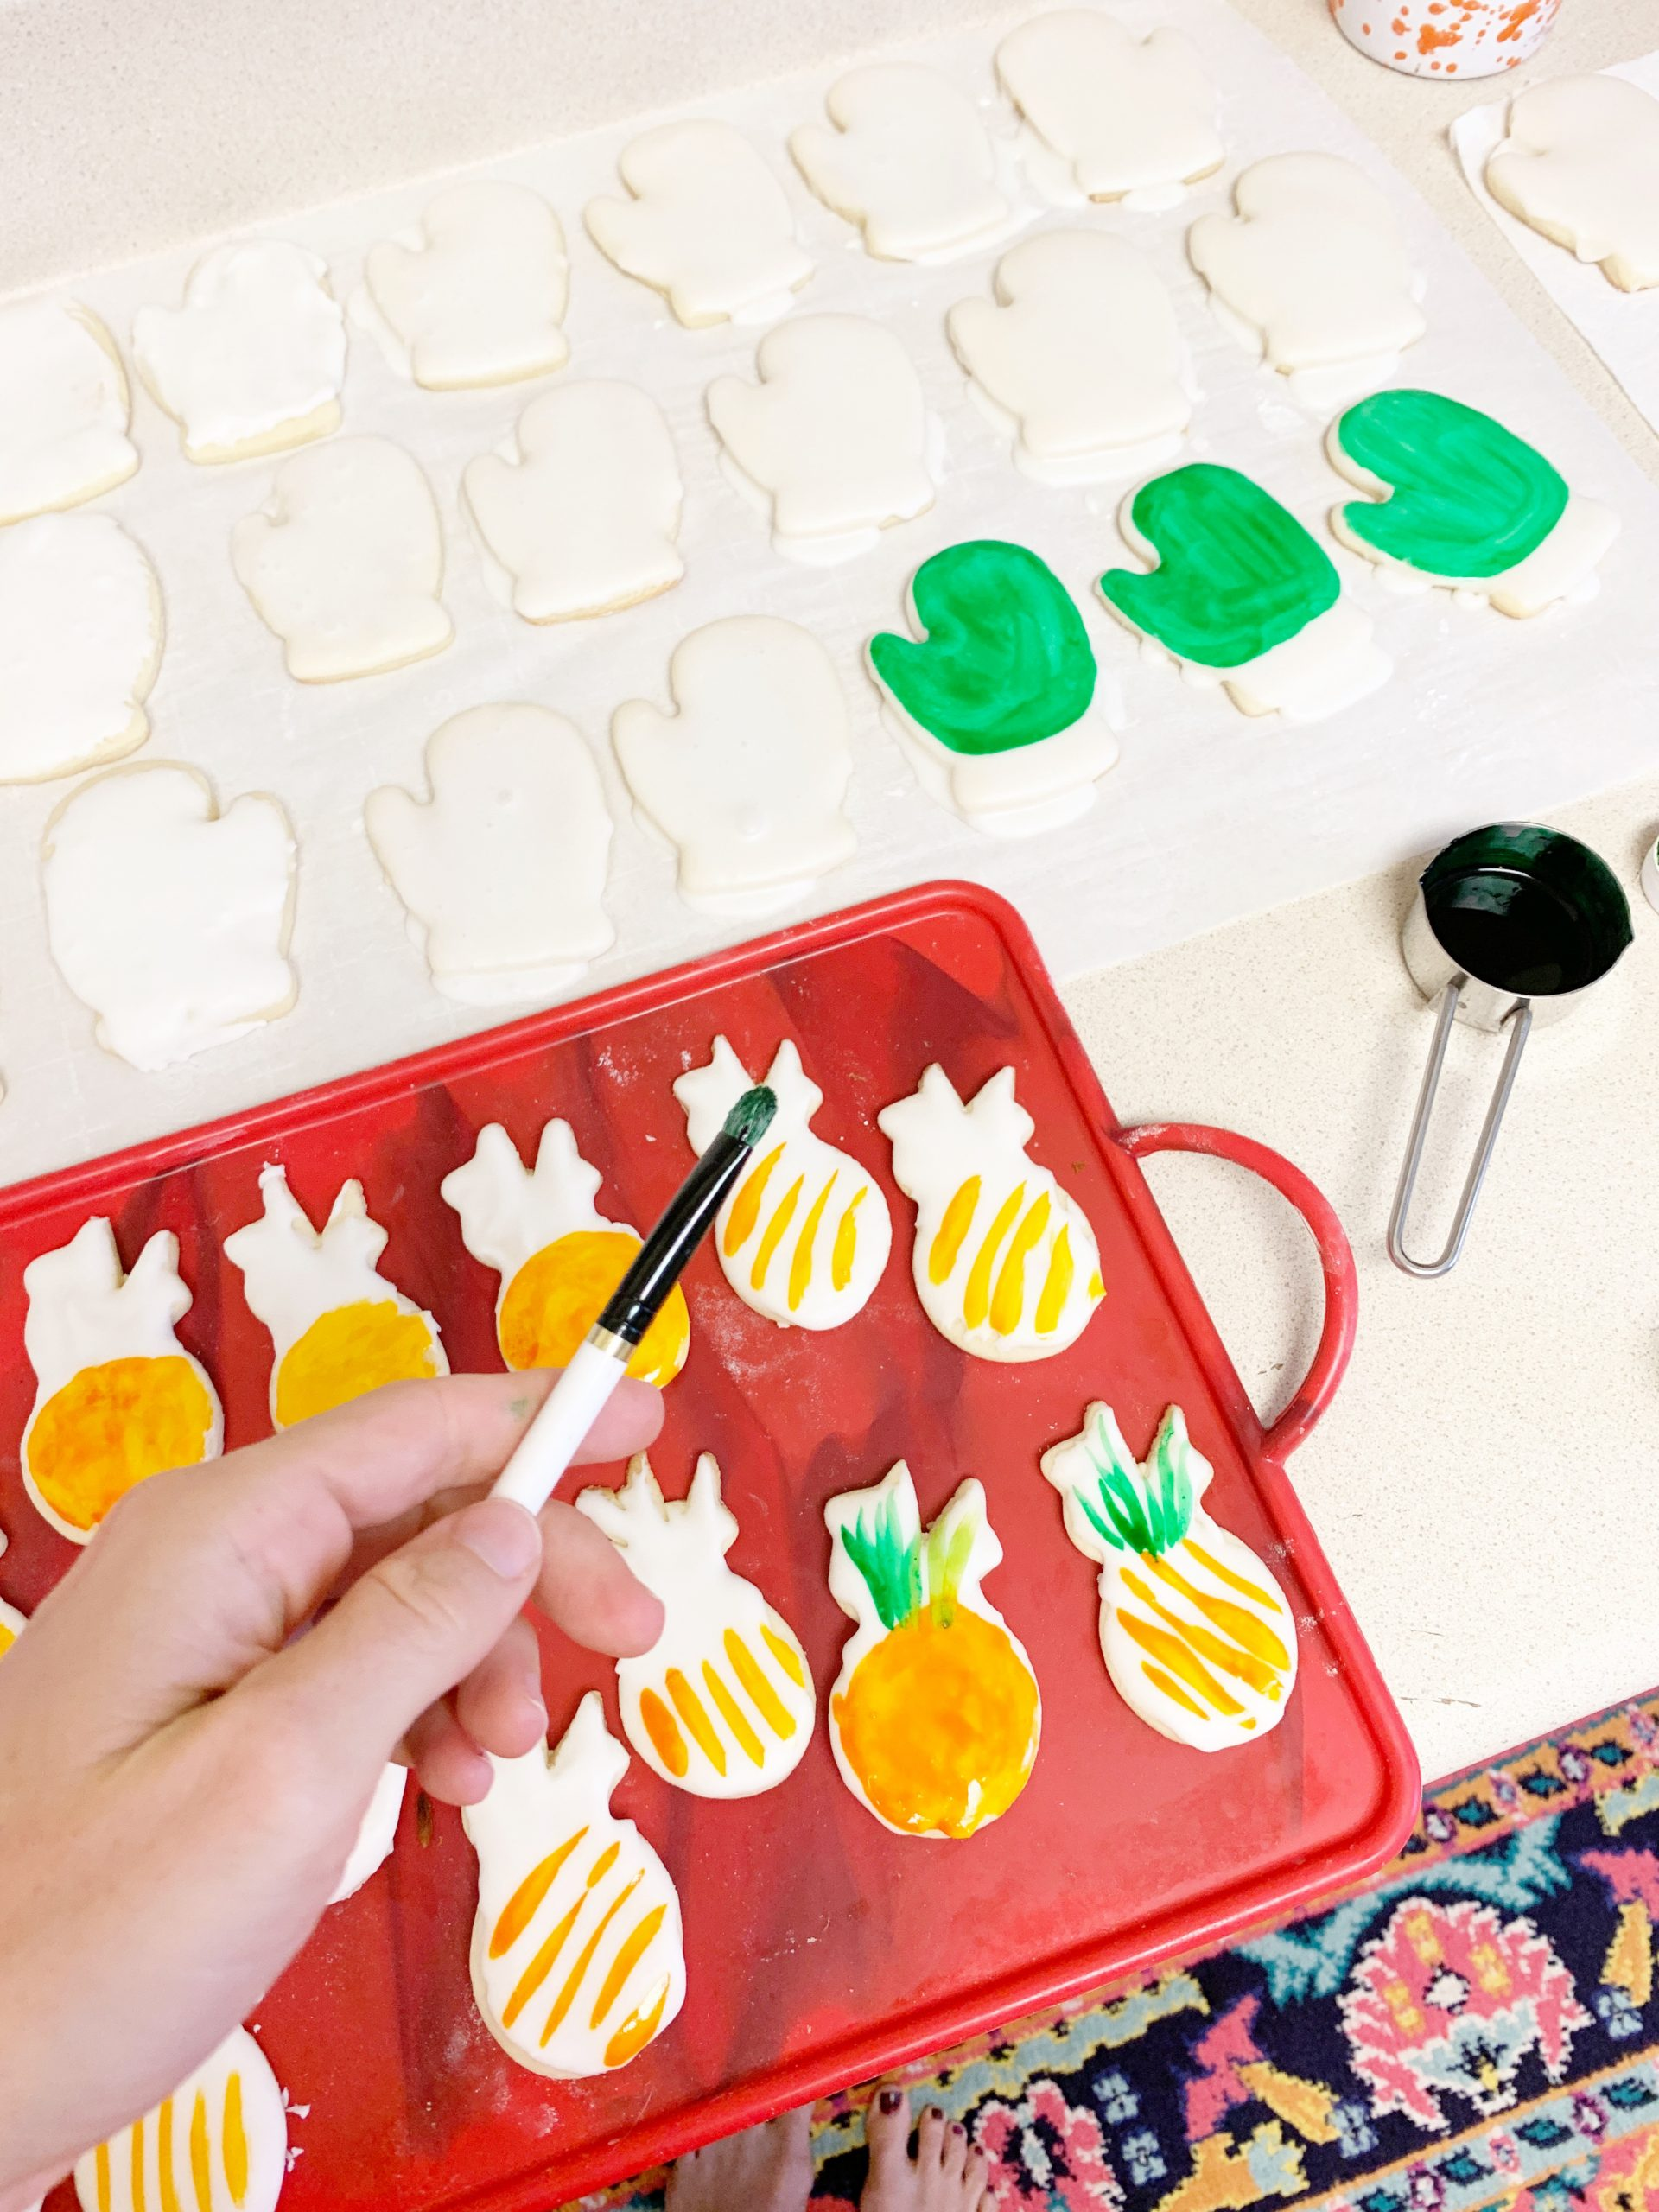 Painted Sugar Cookies - Almost too beautiful to eat! Here's how to make hand-painted sugar cookies at home for any holiday or occasion! | Painted Sugar Cookies - Hand Painted Sugar Cookies | How To Paint Sugar Cookies | Easy Painted Cookies | Watercolor Icing | Painted Cookies